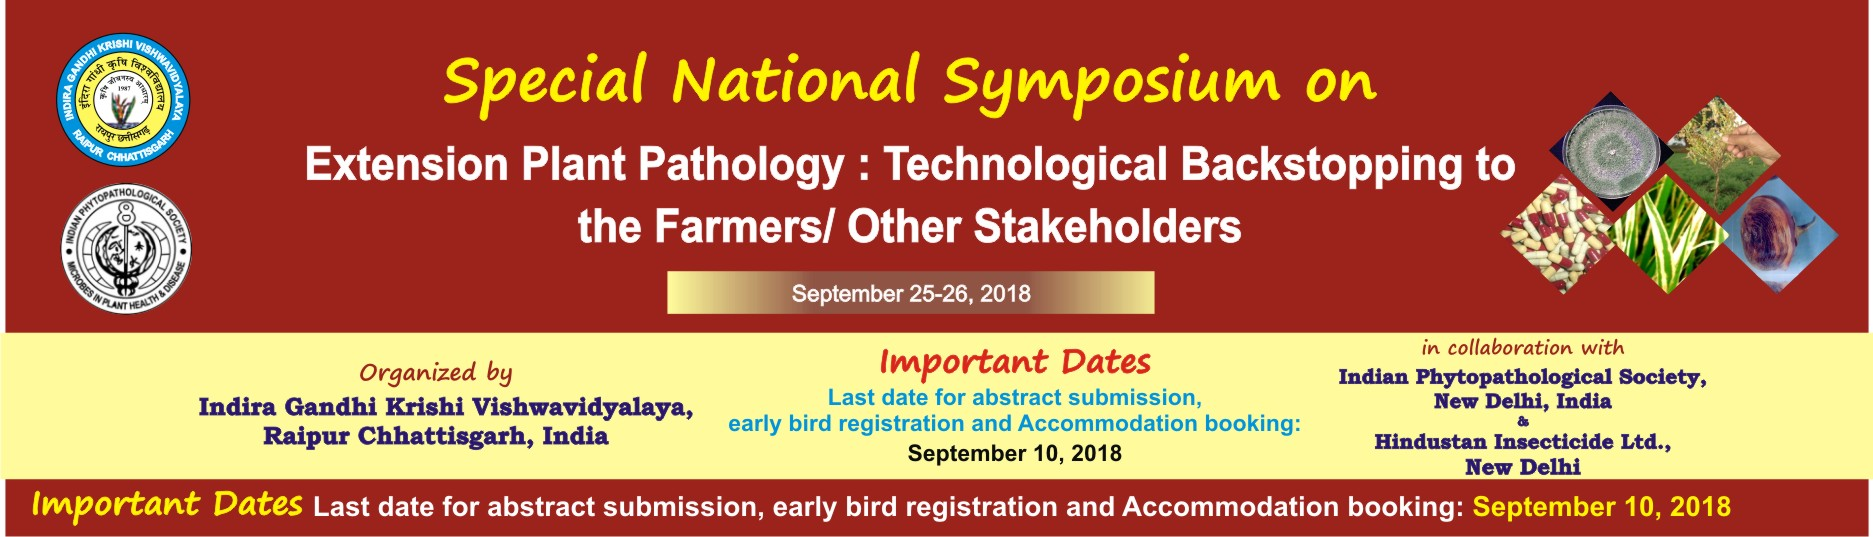 Special Symposium  at IGKV, Raipur, Sept. 25-26, 2018